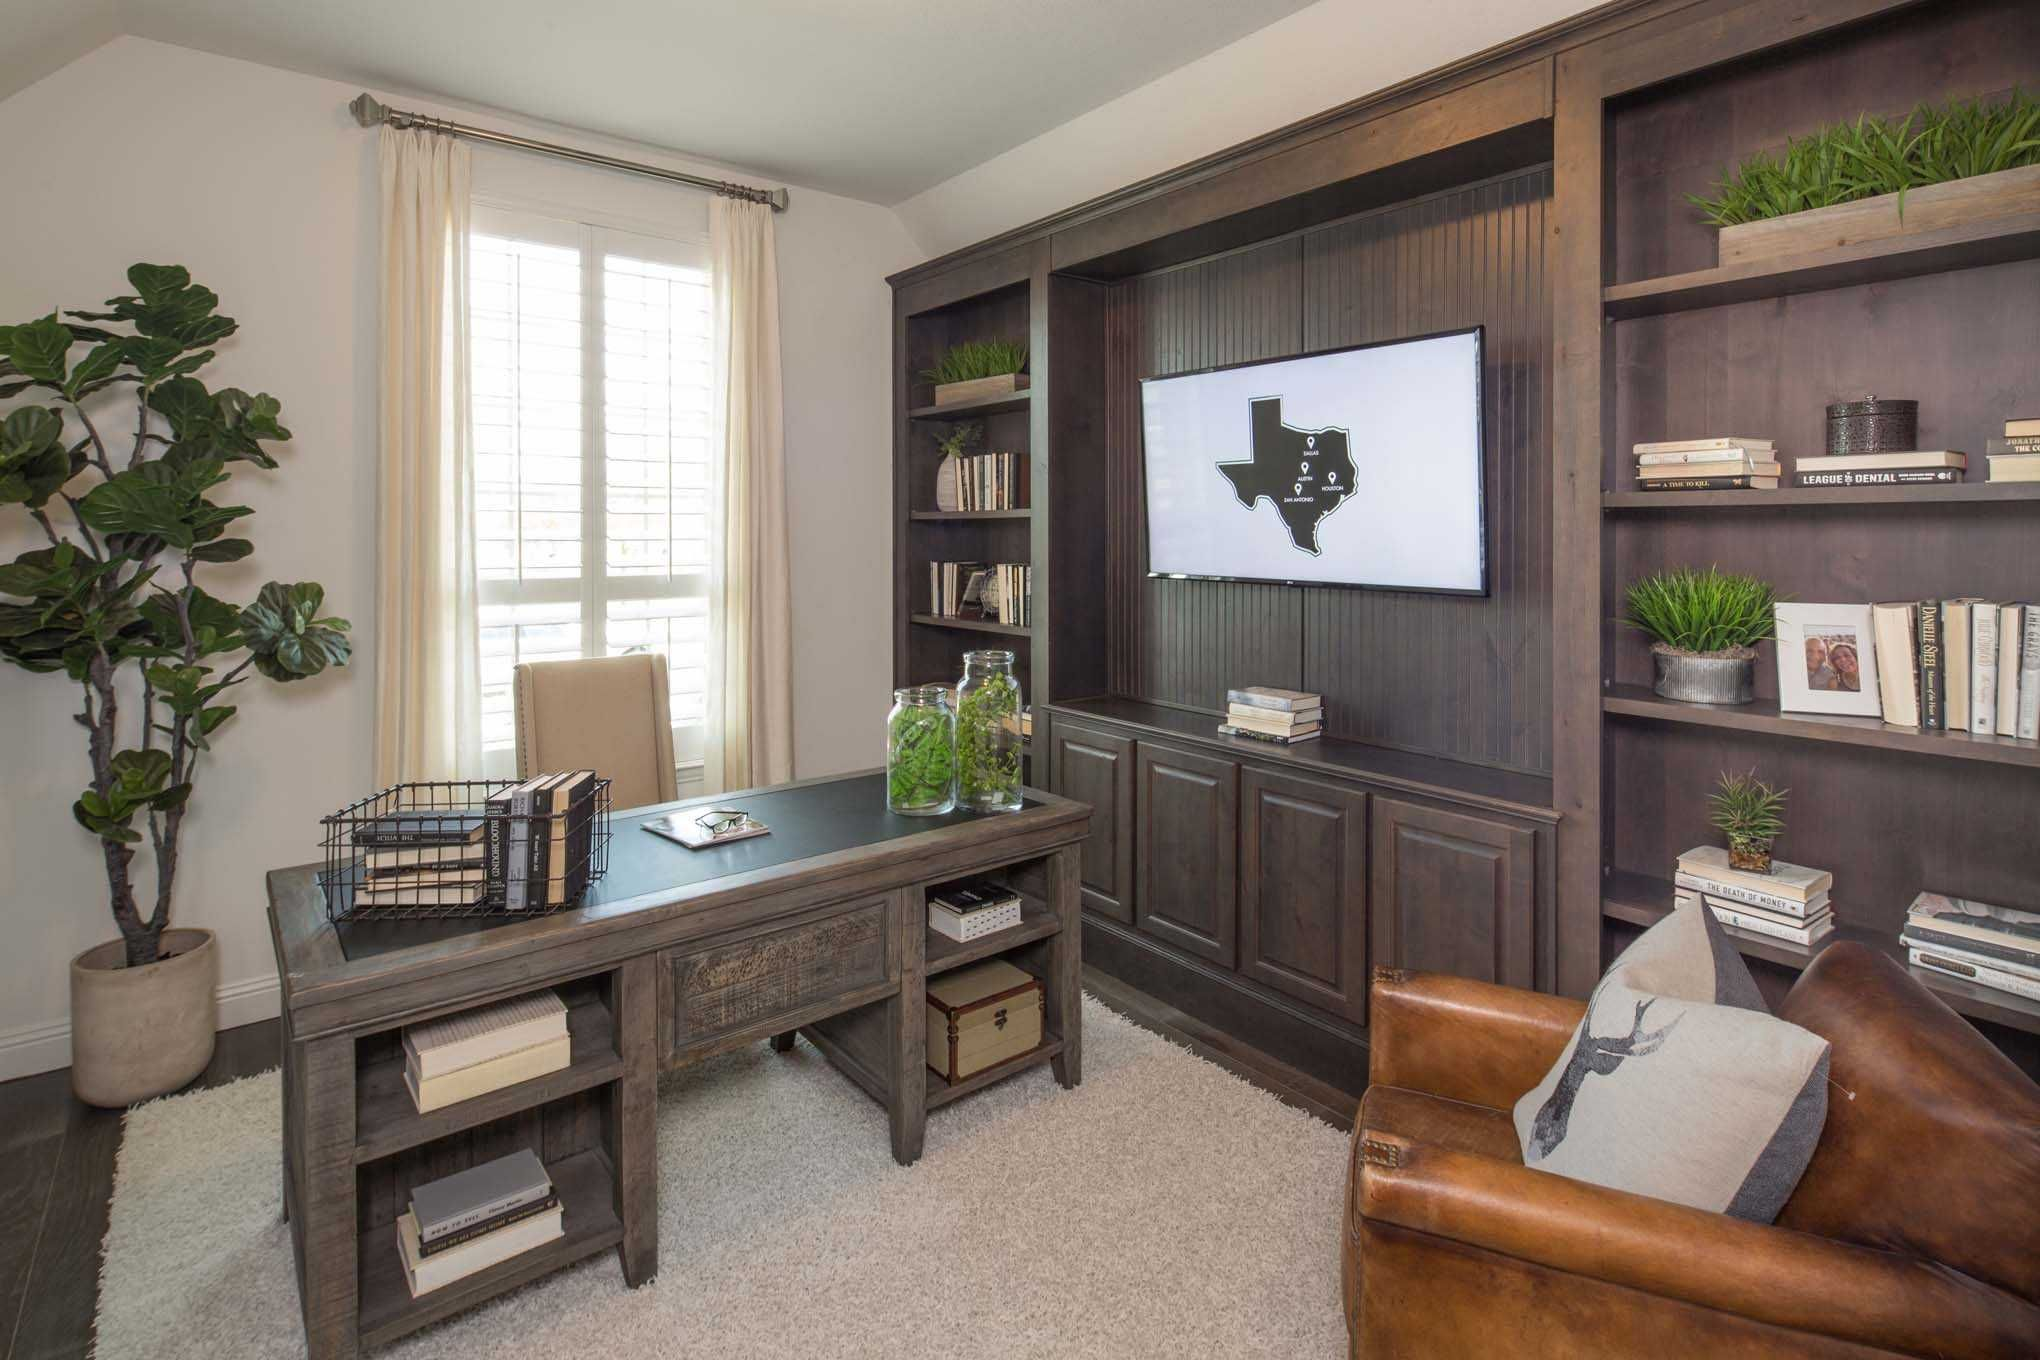 A Professional Looking Home Office Complete With Gray Wood Finishes And Earthy Decor Highlandhomes Texas Home Home Builders Home Office